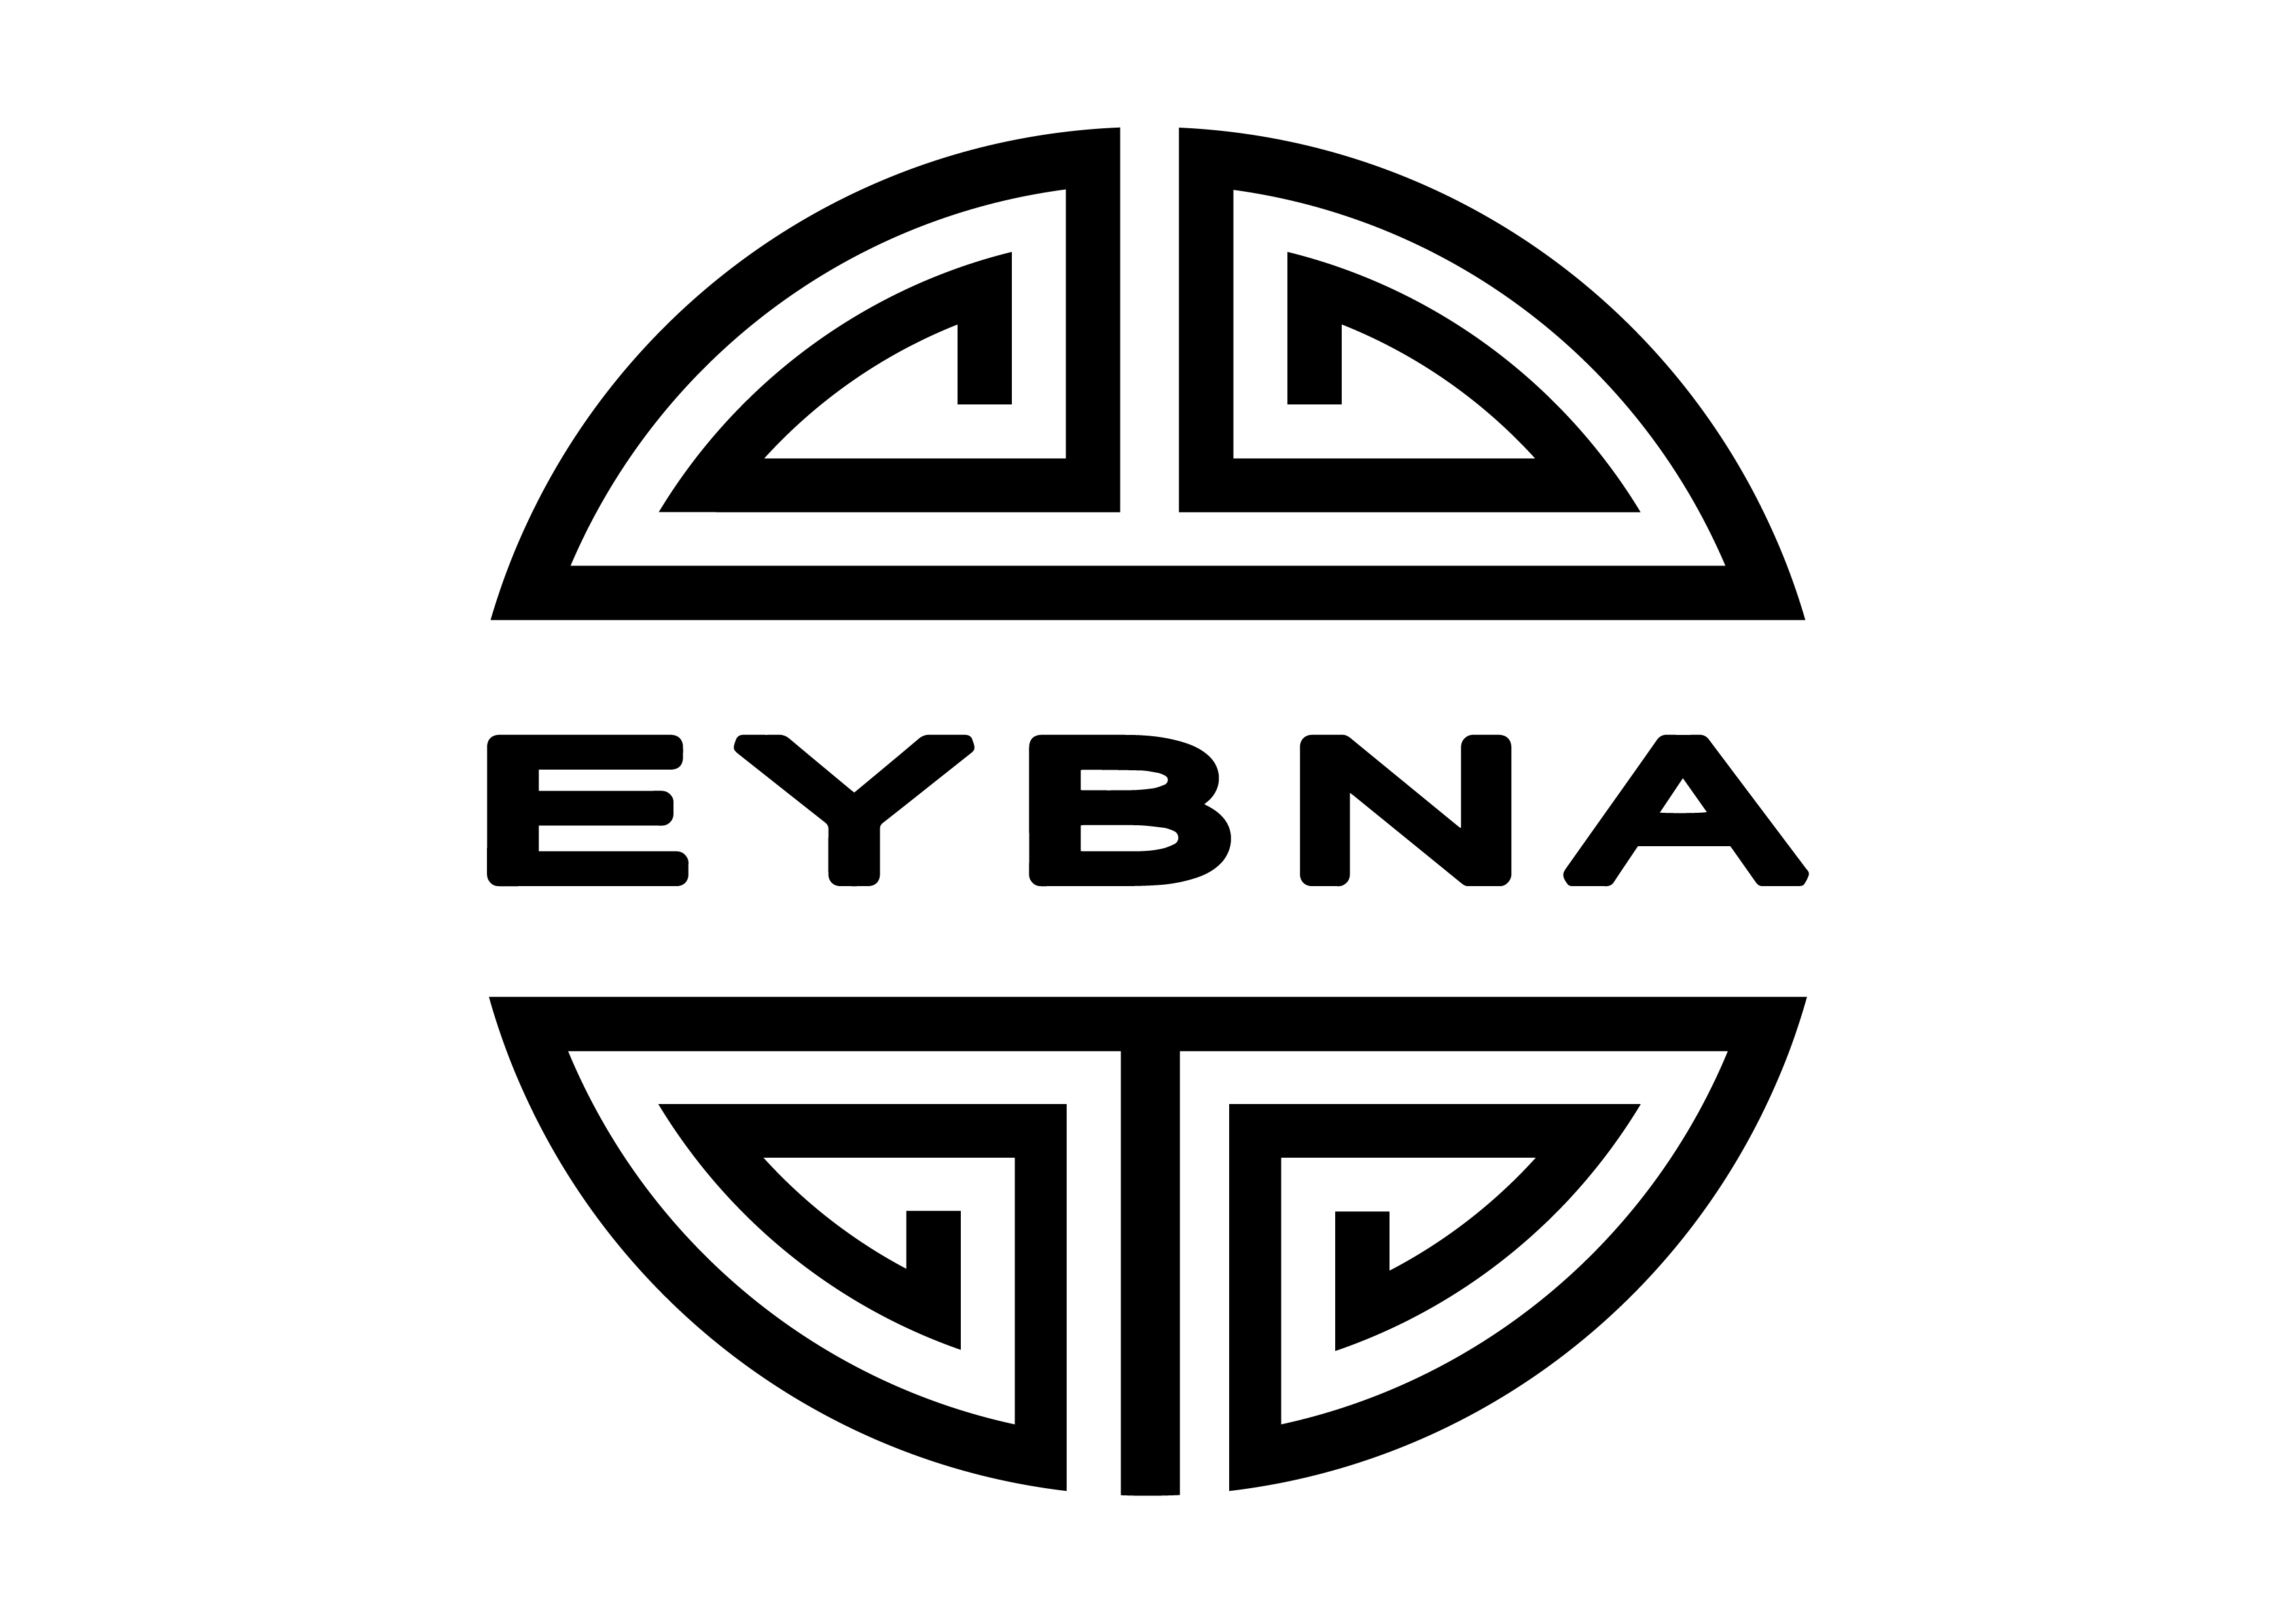 Logo for Eybna Technologies